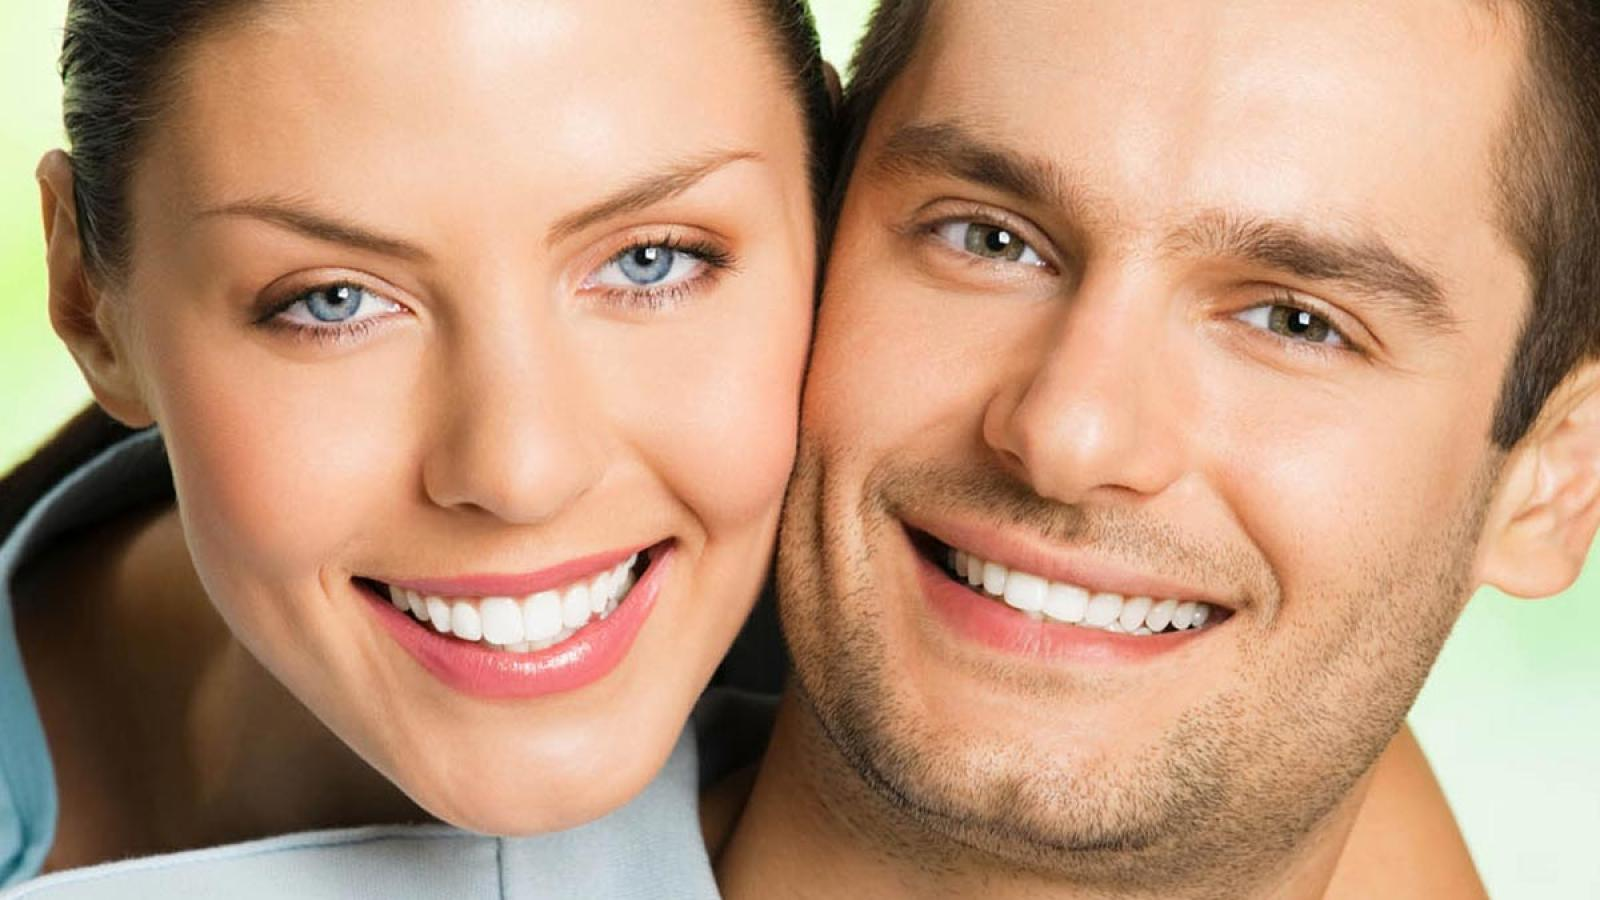 Noa Dental Clinic Turkey - Dentist in Antalya - High quality at affordable prices - Smile makeover in Turkey